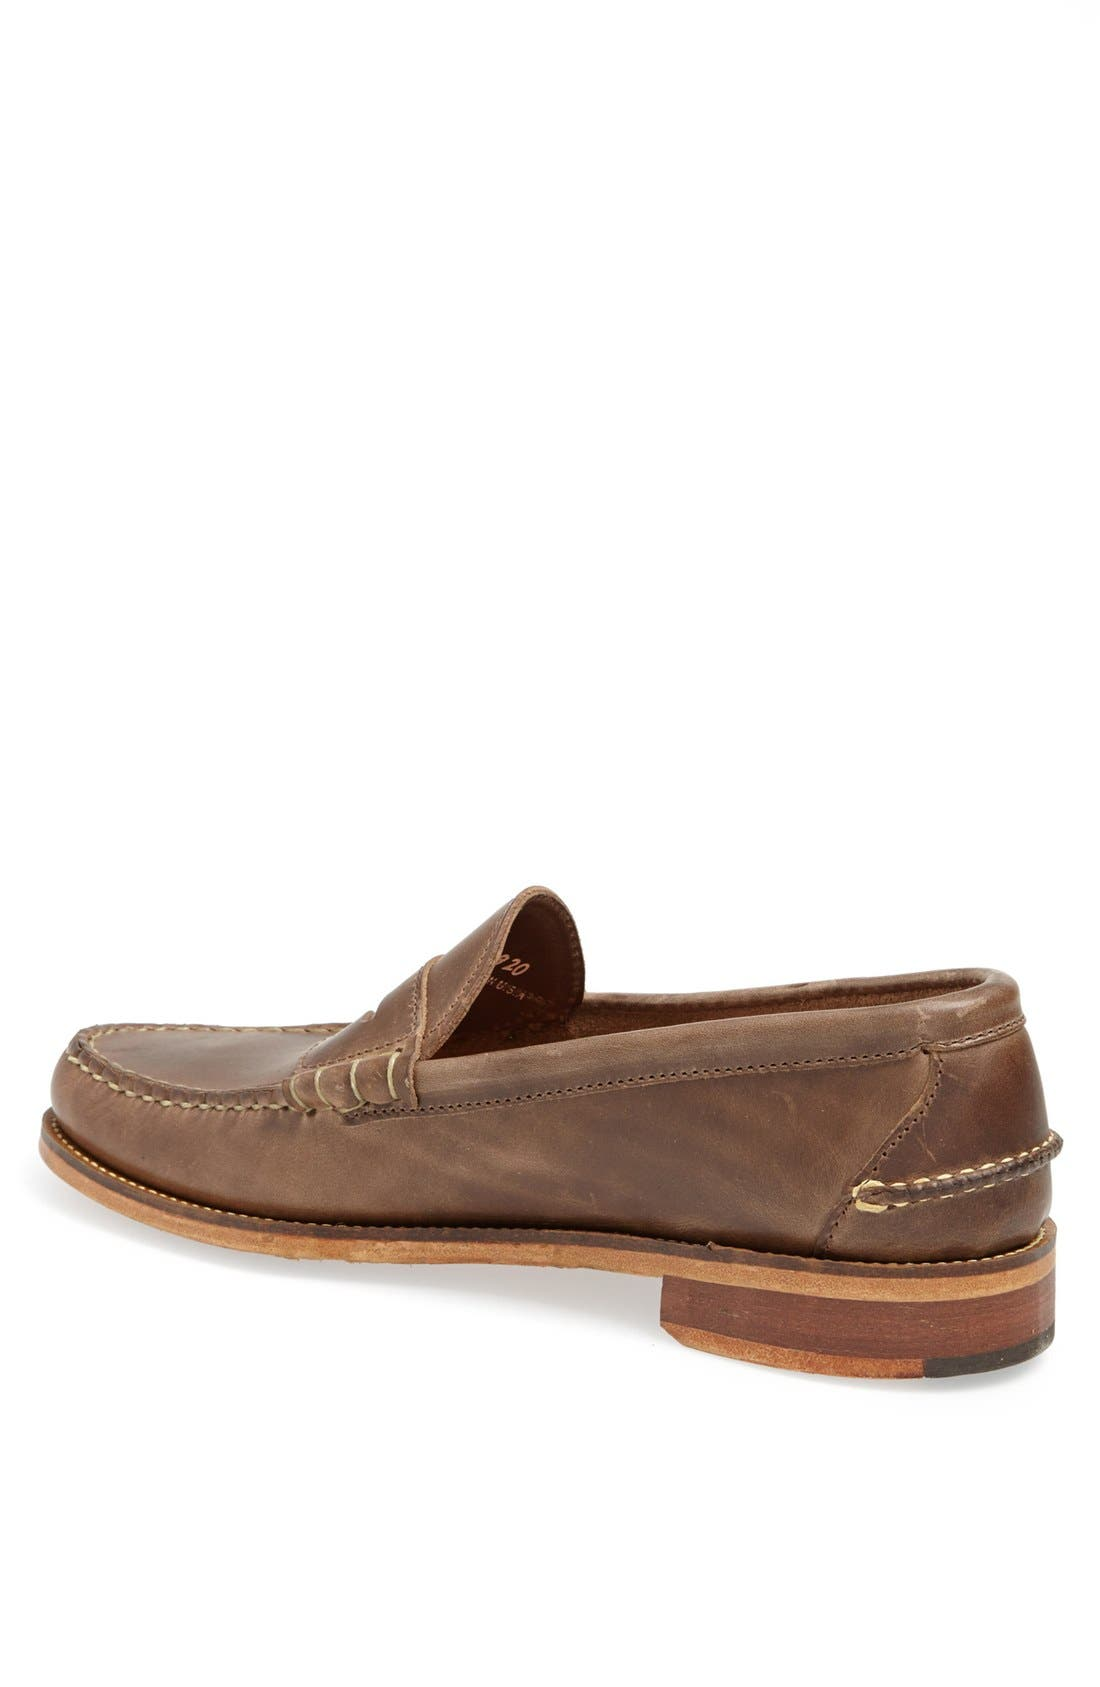 Beefroll Penny Loafer,                             Alternate thumbnail 4, color,                             NATURAL BROWN